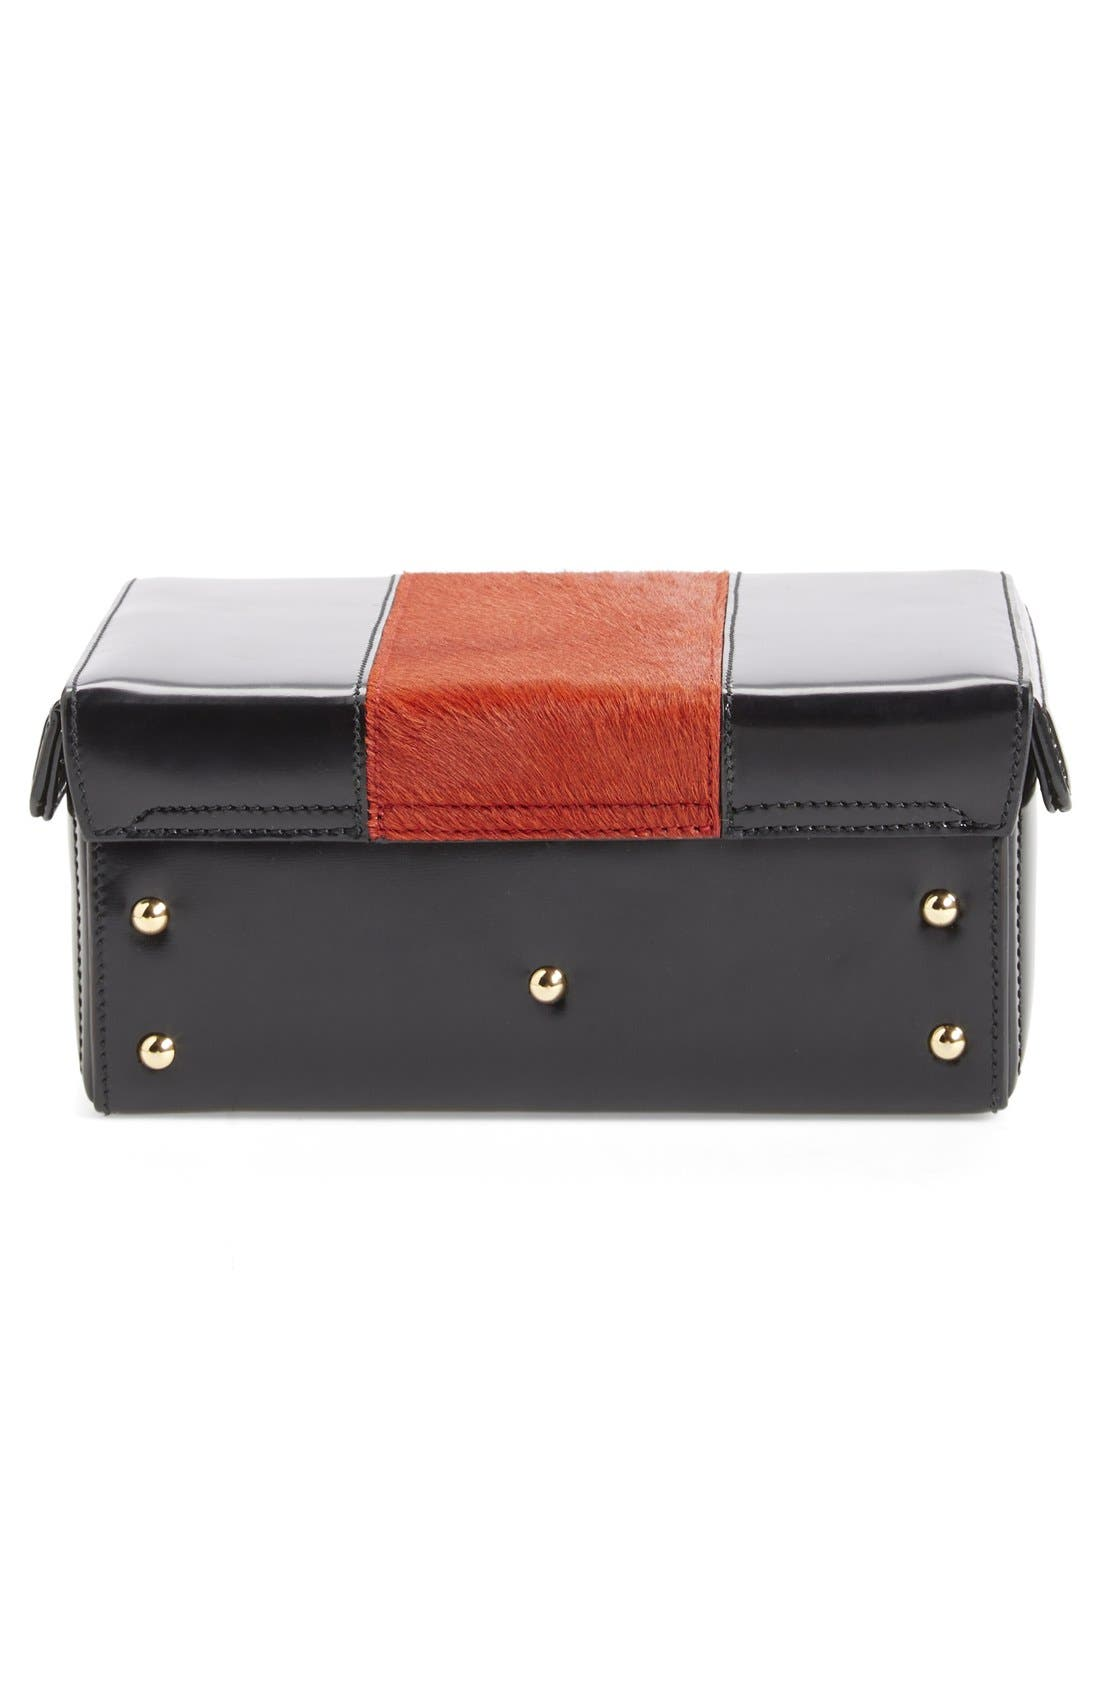 'Grace - Small' Smooth Calfskin & Genuine Calf Hair Box Trunk,                             Alternate thumbnail 5, color,                             Black/Blood Orange